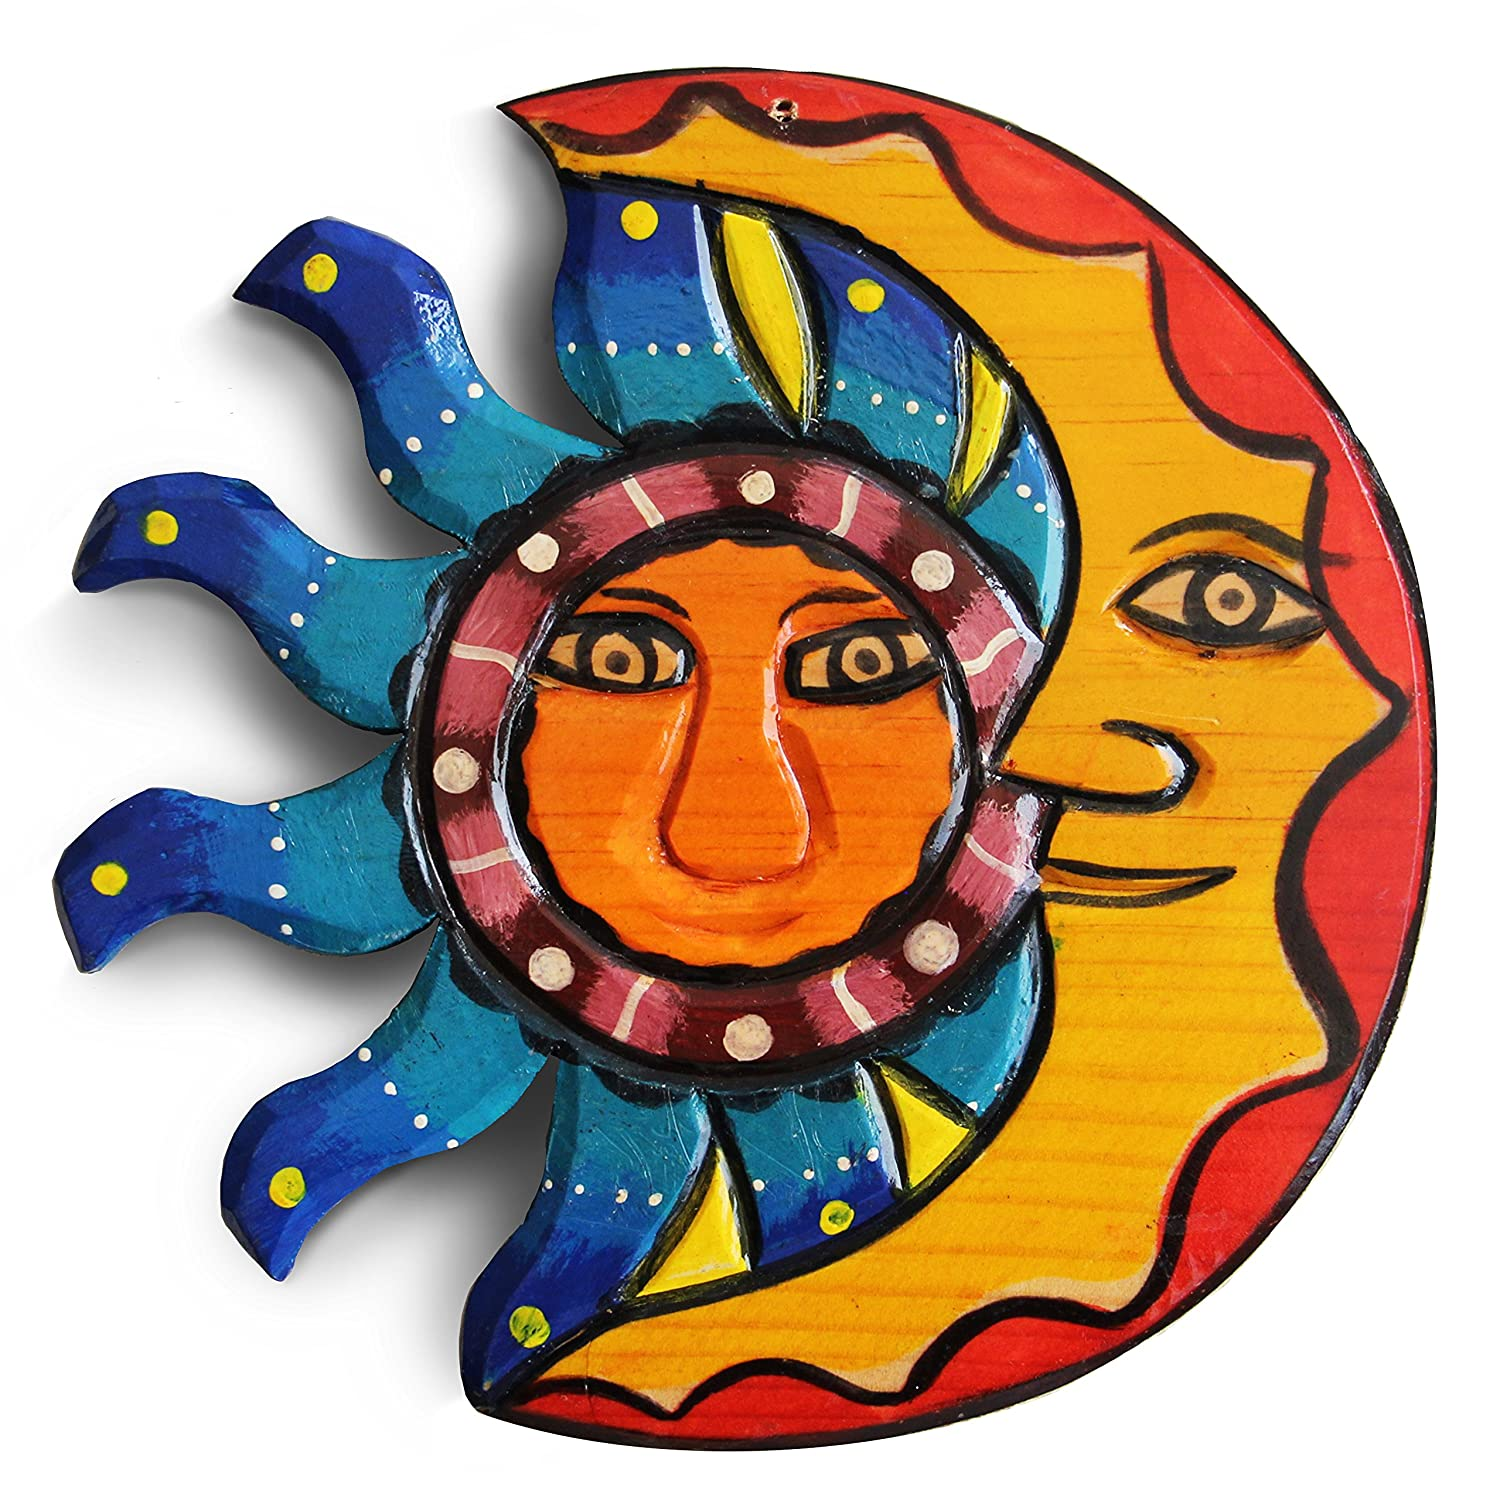 Sun and Moon Hanging Set. Outdoor Wall Decor and Wood Decor for Summer Beach House, Garden, Living Room, Fireplace as an Outdoor Home Decoration Idea. Size 8.25 x 8.25 inches. Handmade!